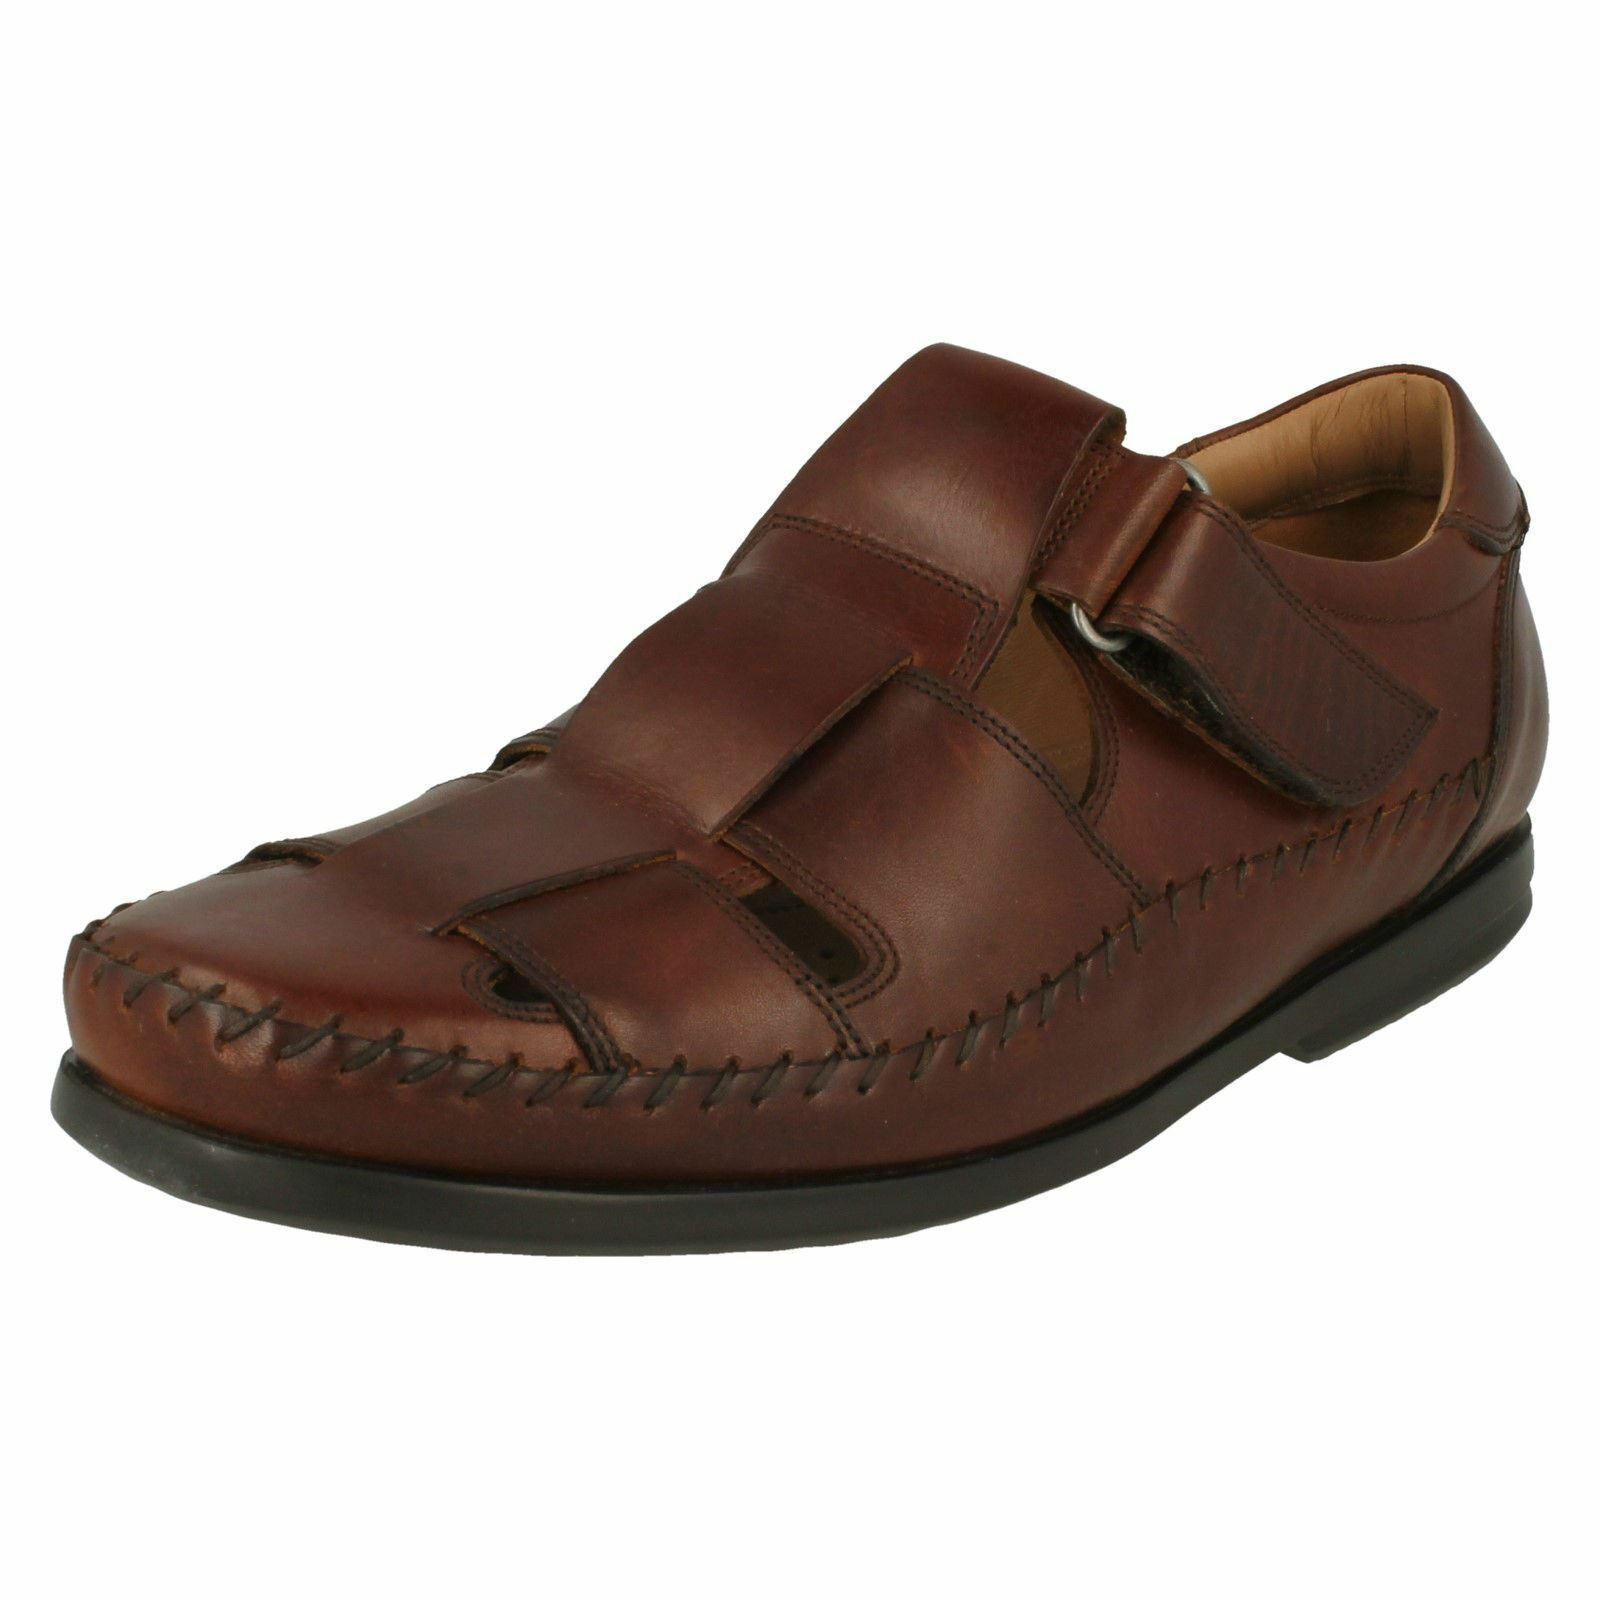 Mens Clarks Un Gala Gala Gala Strap Dark Tan Leather Casual Sandal schuhe G Fitting    4767e3